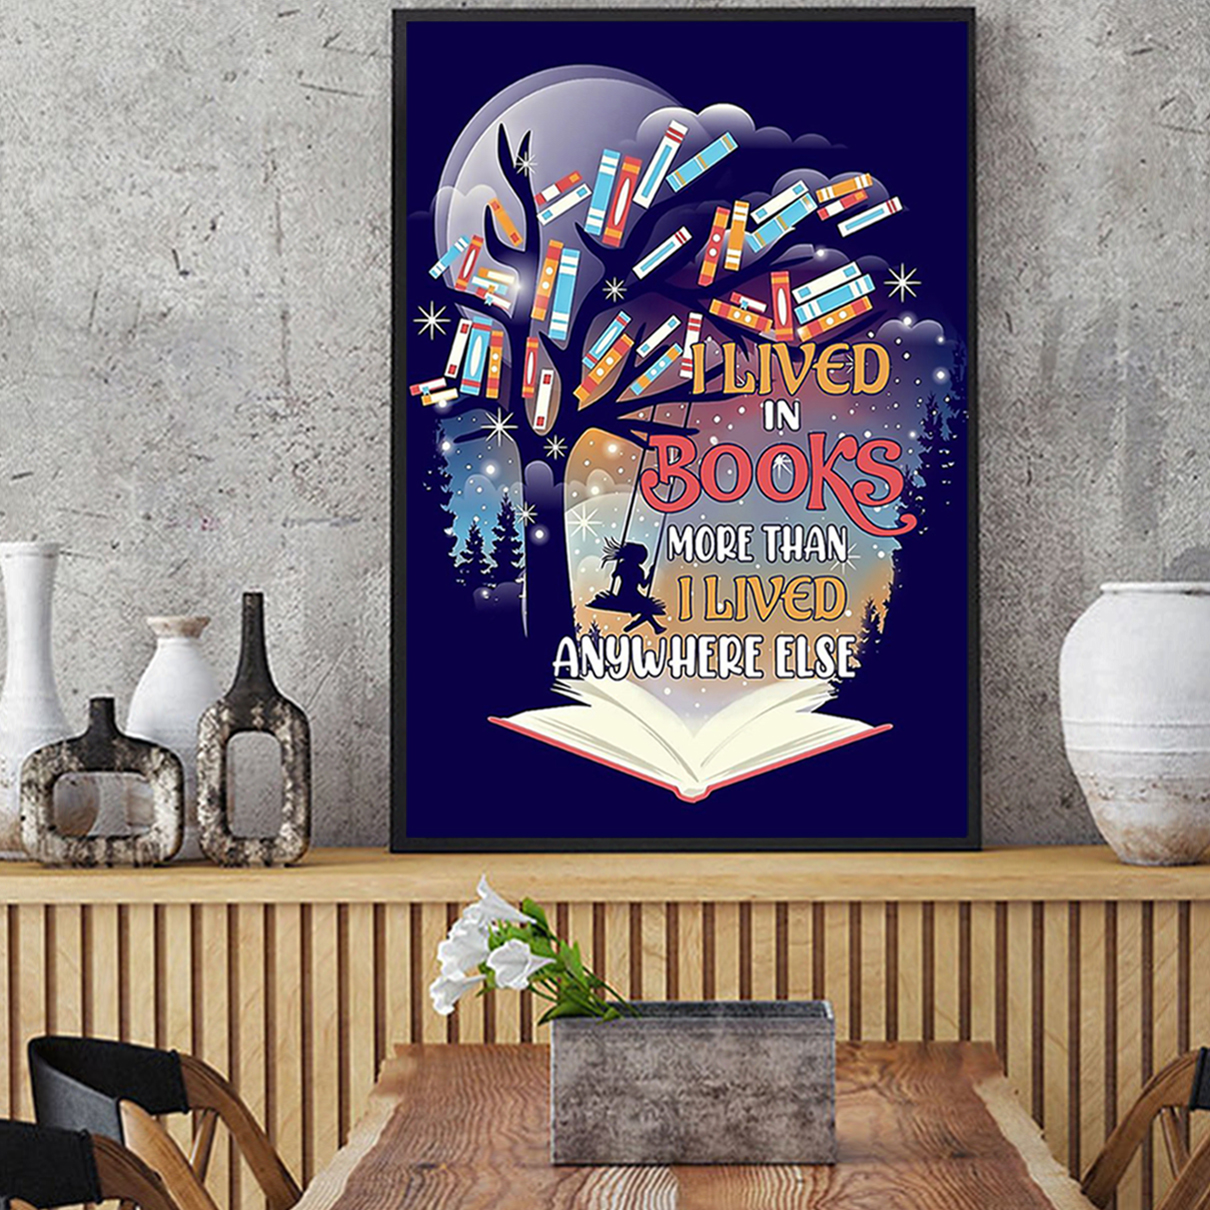 I lived in books more than I lived anywhere else poster A1